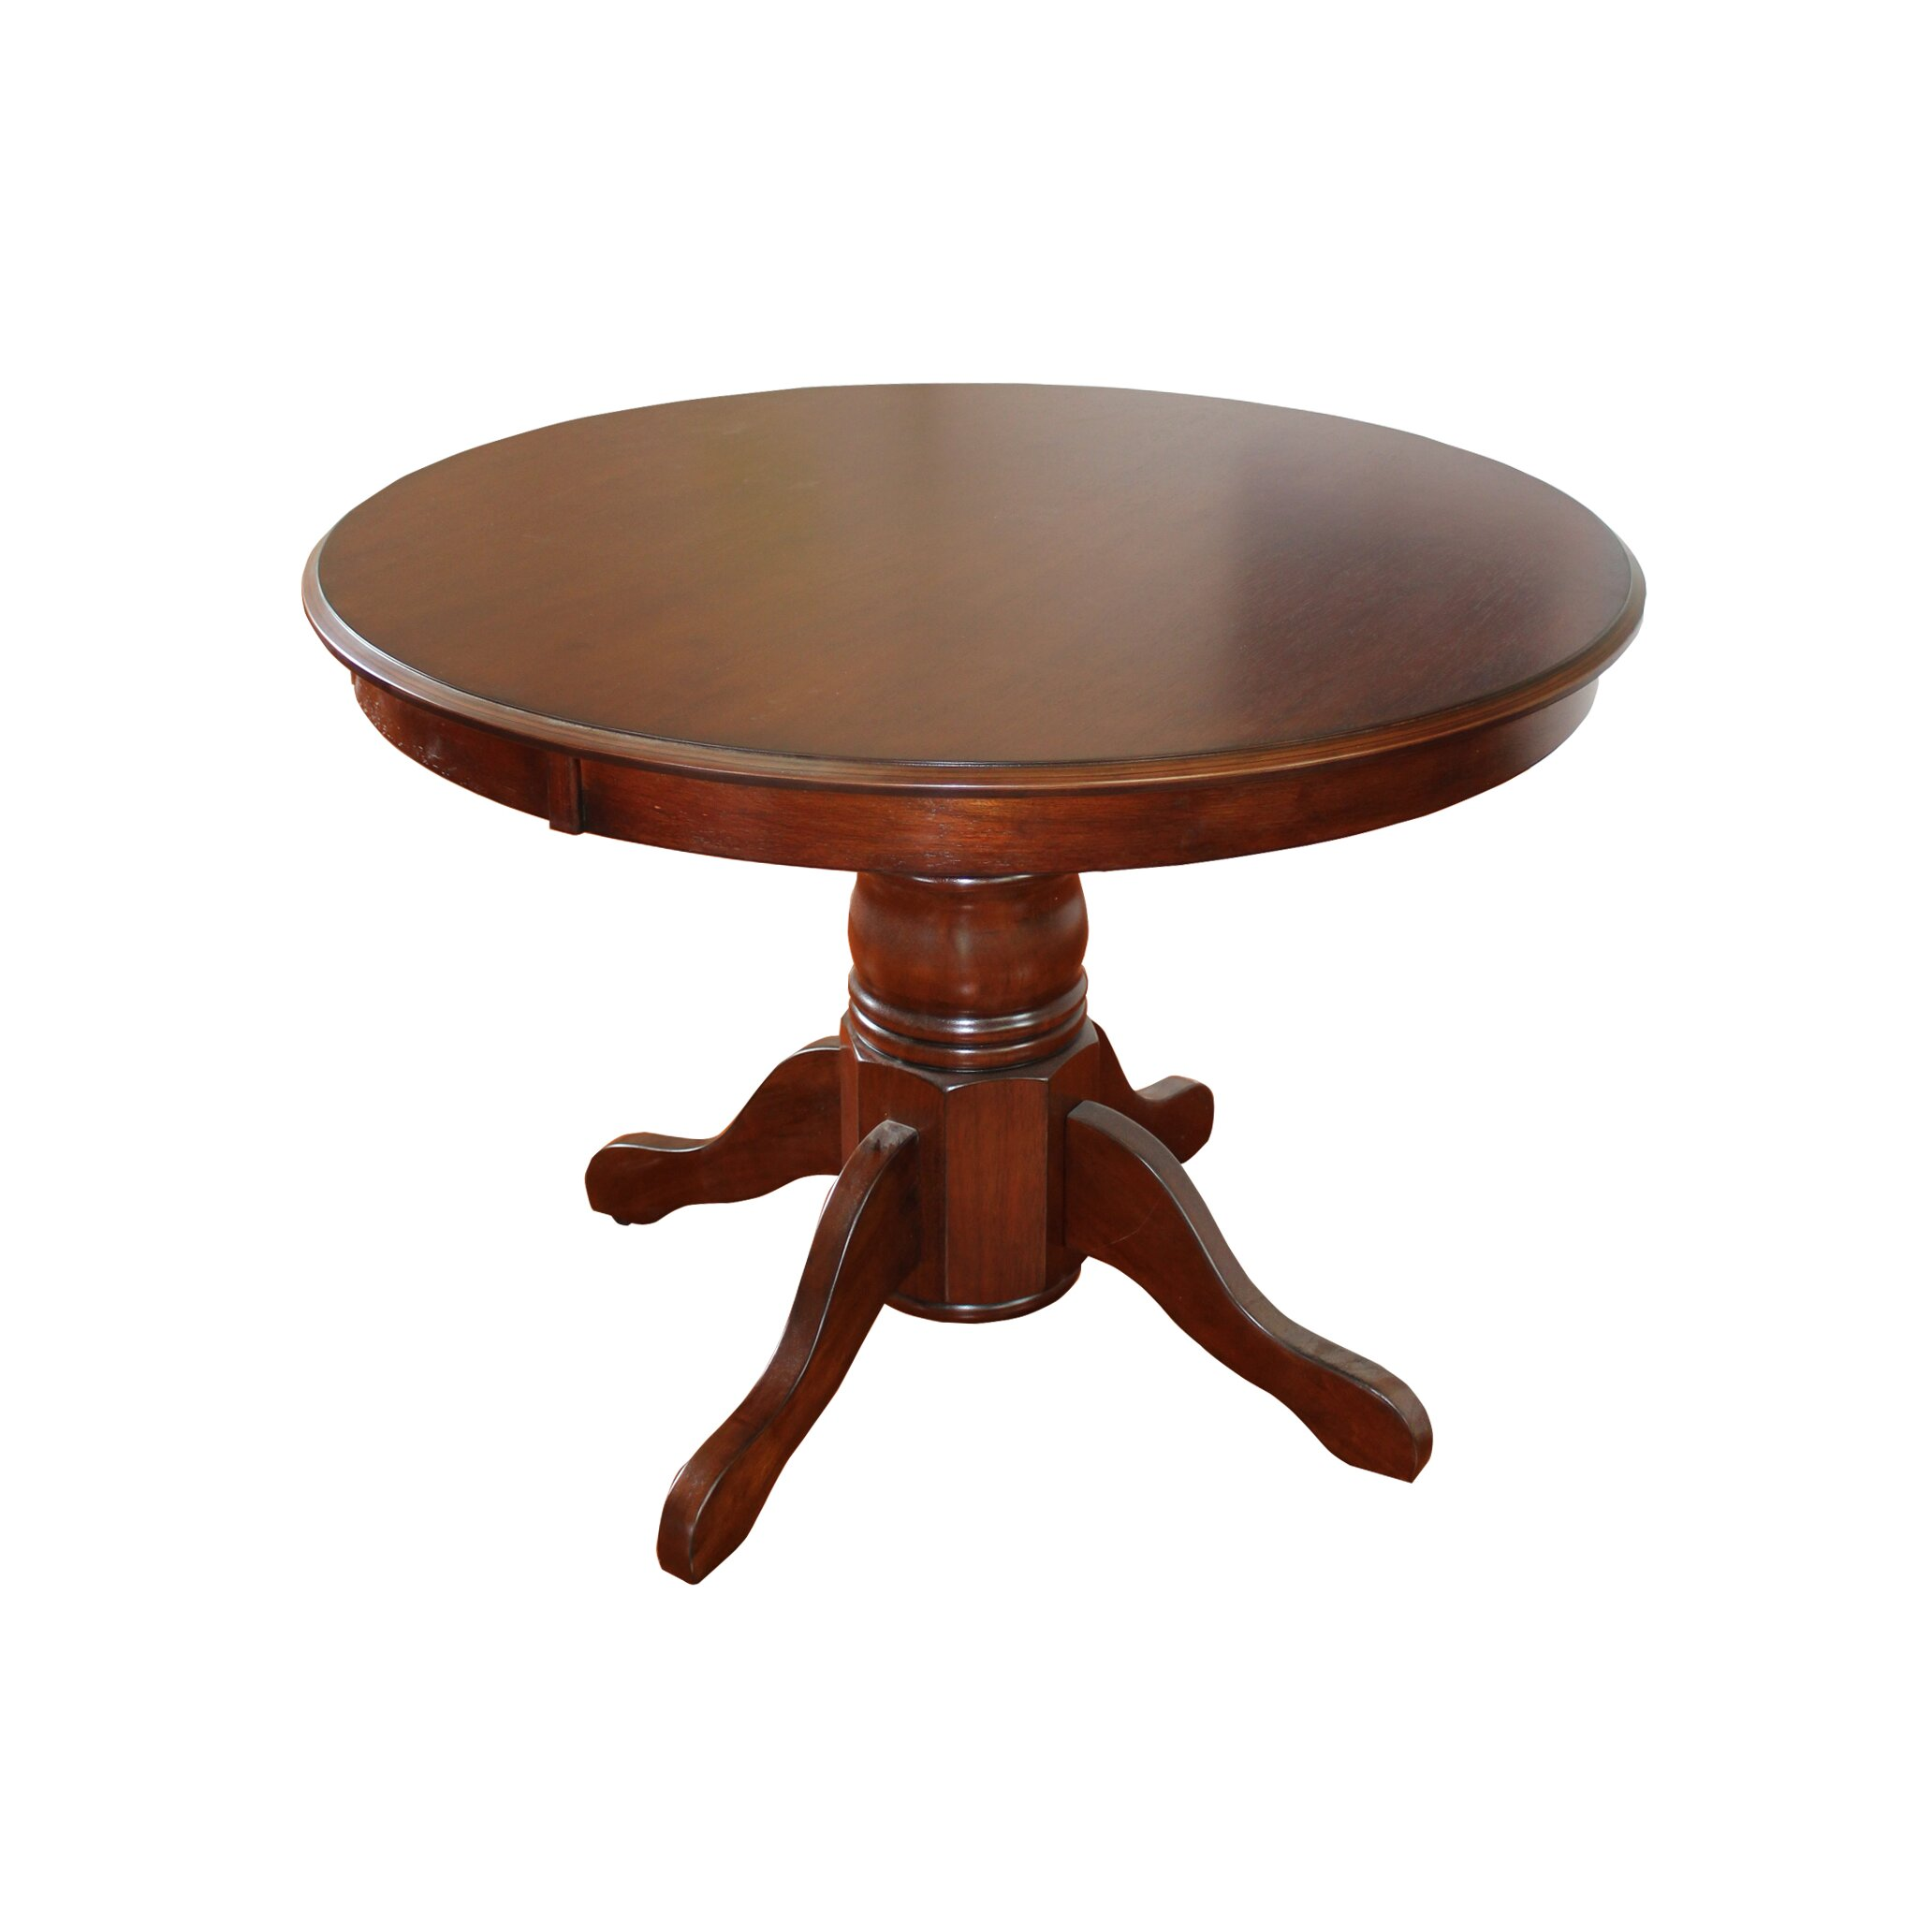 Home styles pedestal dining table wayfair for Dining table styles